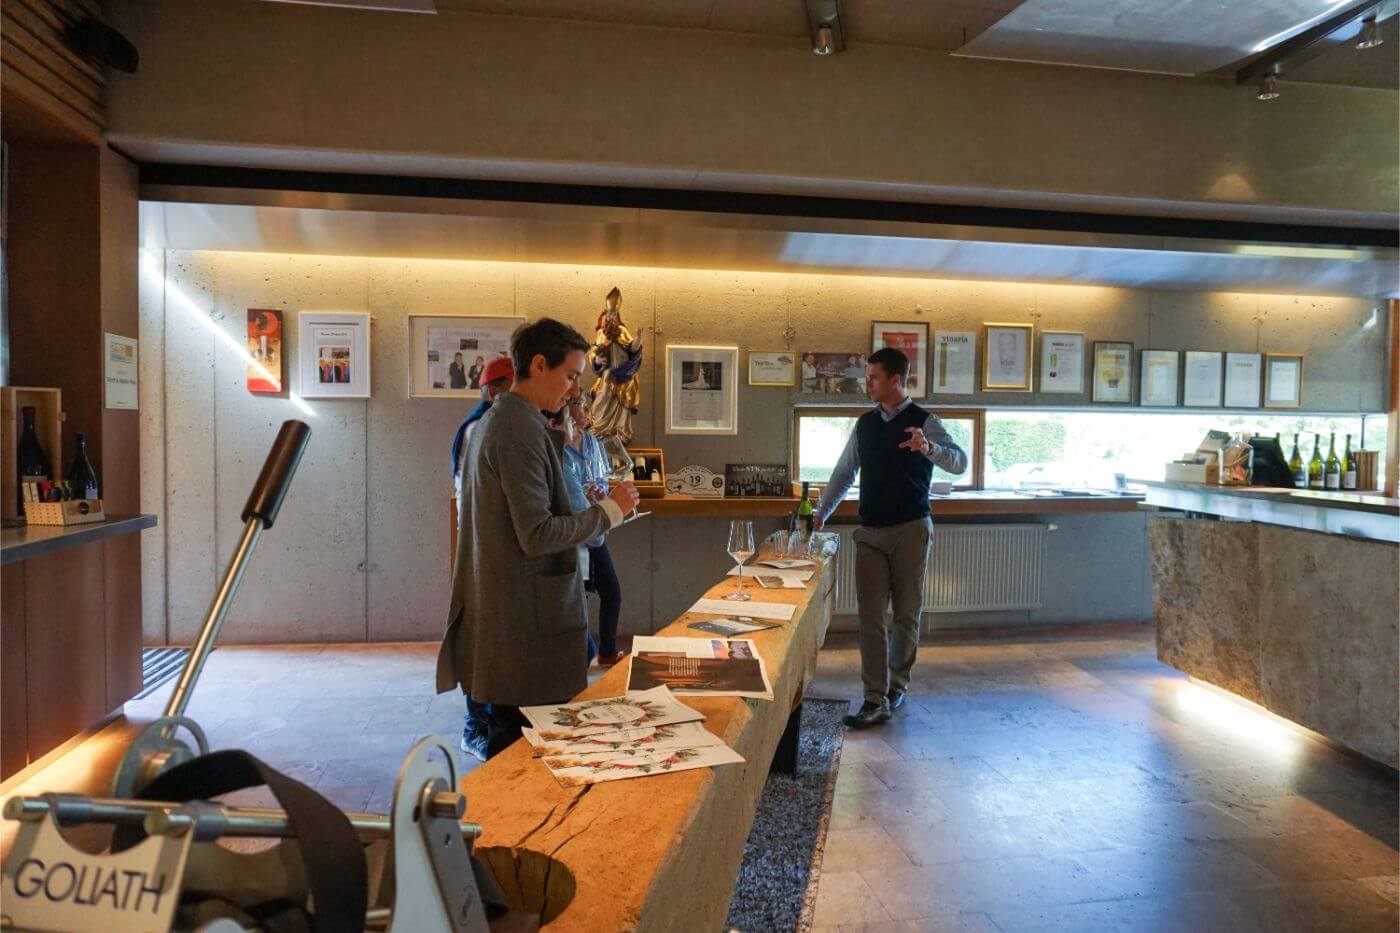 Weingut Erich & Walter Polz Tour and Tasting, South Styria, Austria